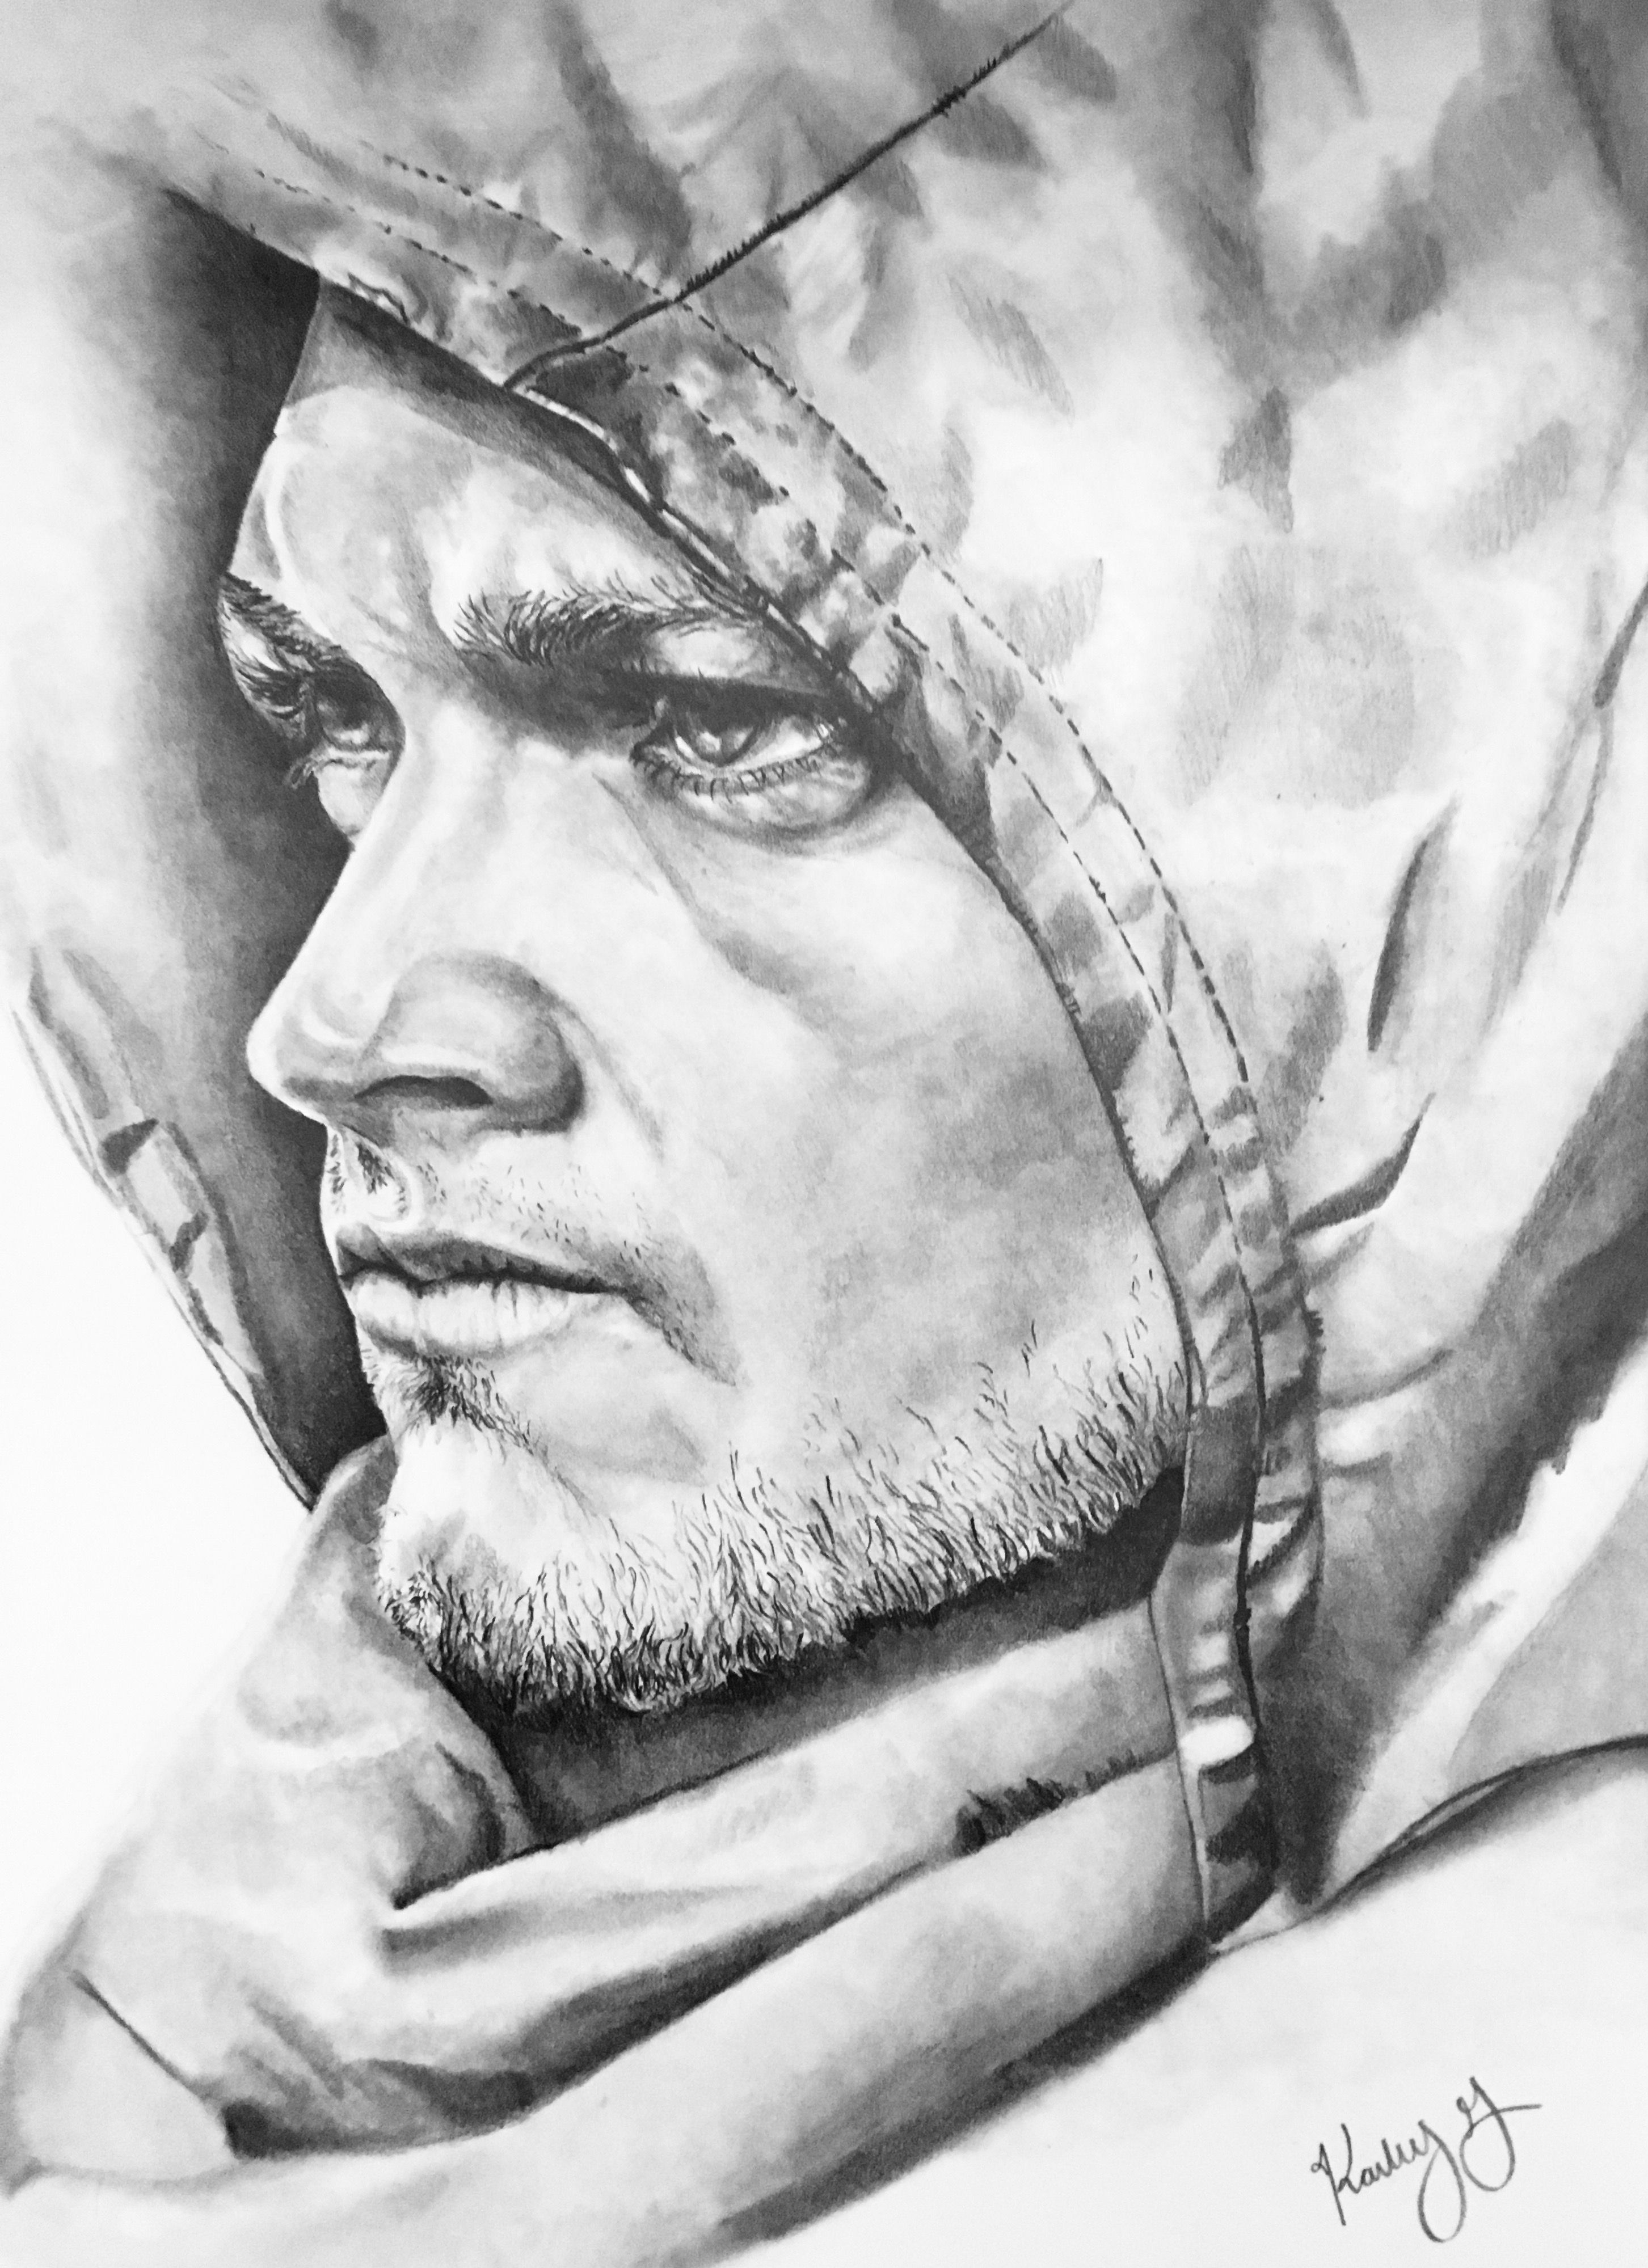 My latest drawing of robin hood from the new movie coming out this fall on my youtube channel november 19 2018